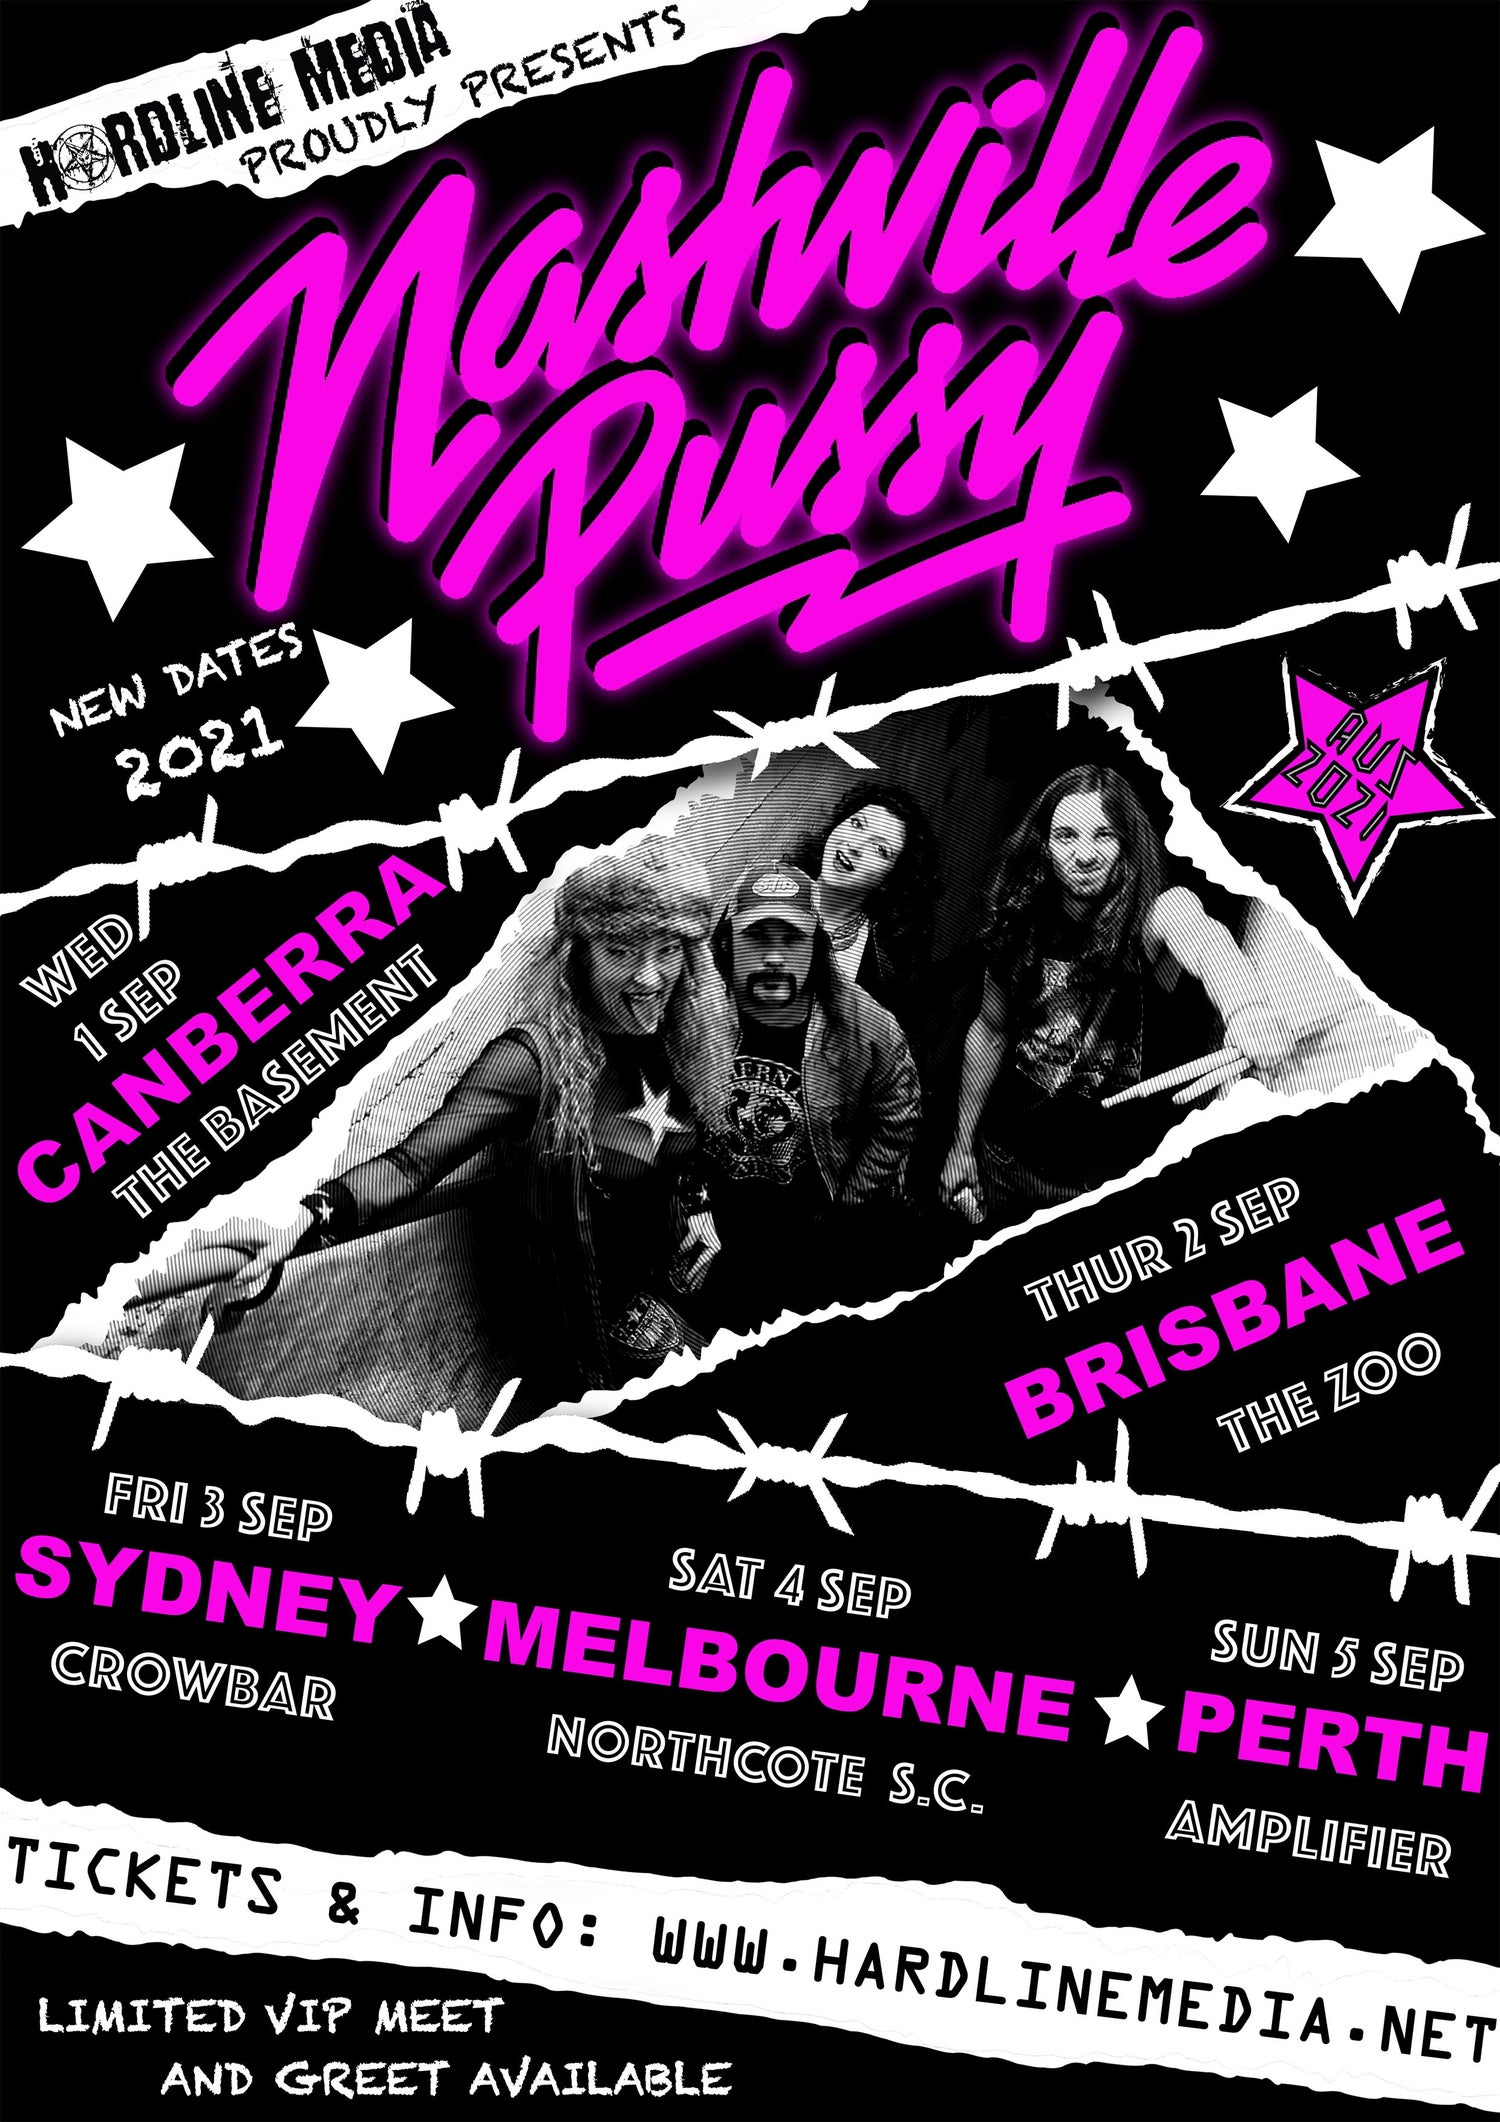 Image of VIP TICKET - NASHVILLE PUSSY - SYDNEY, CROWBAR - FRI 3 SEP 2021